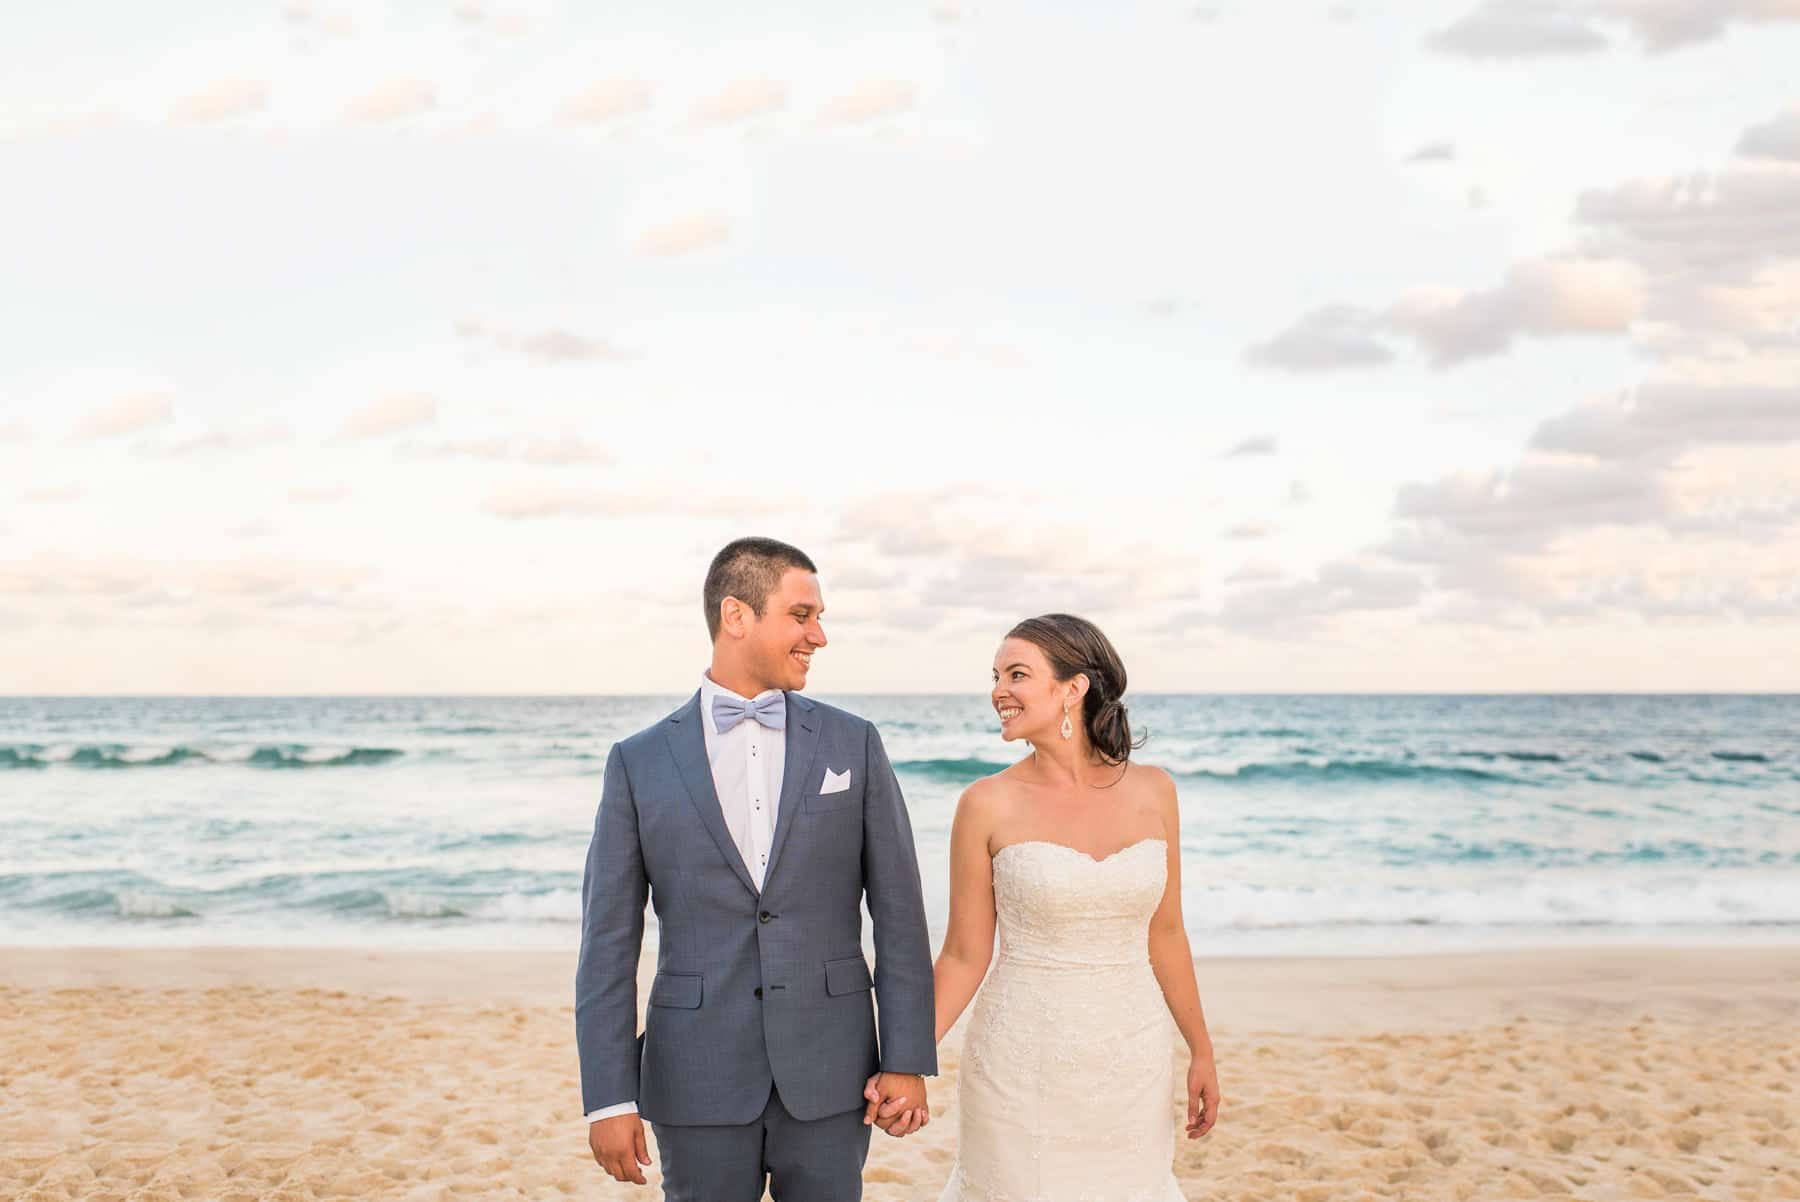 Bronte Beach Wedding Photograpy